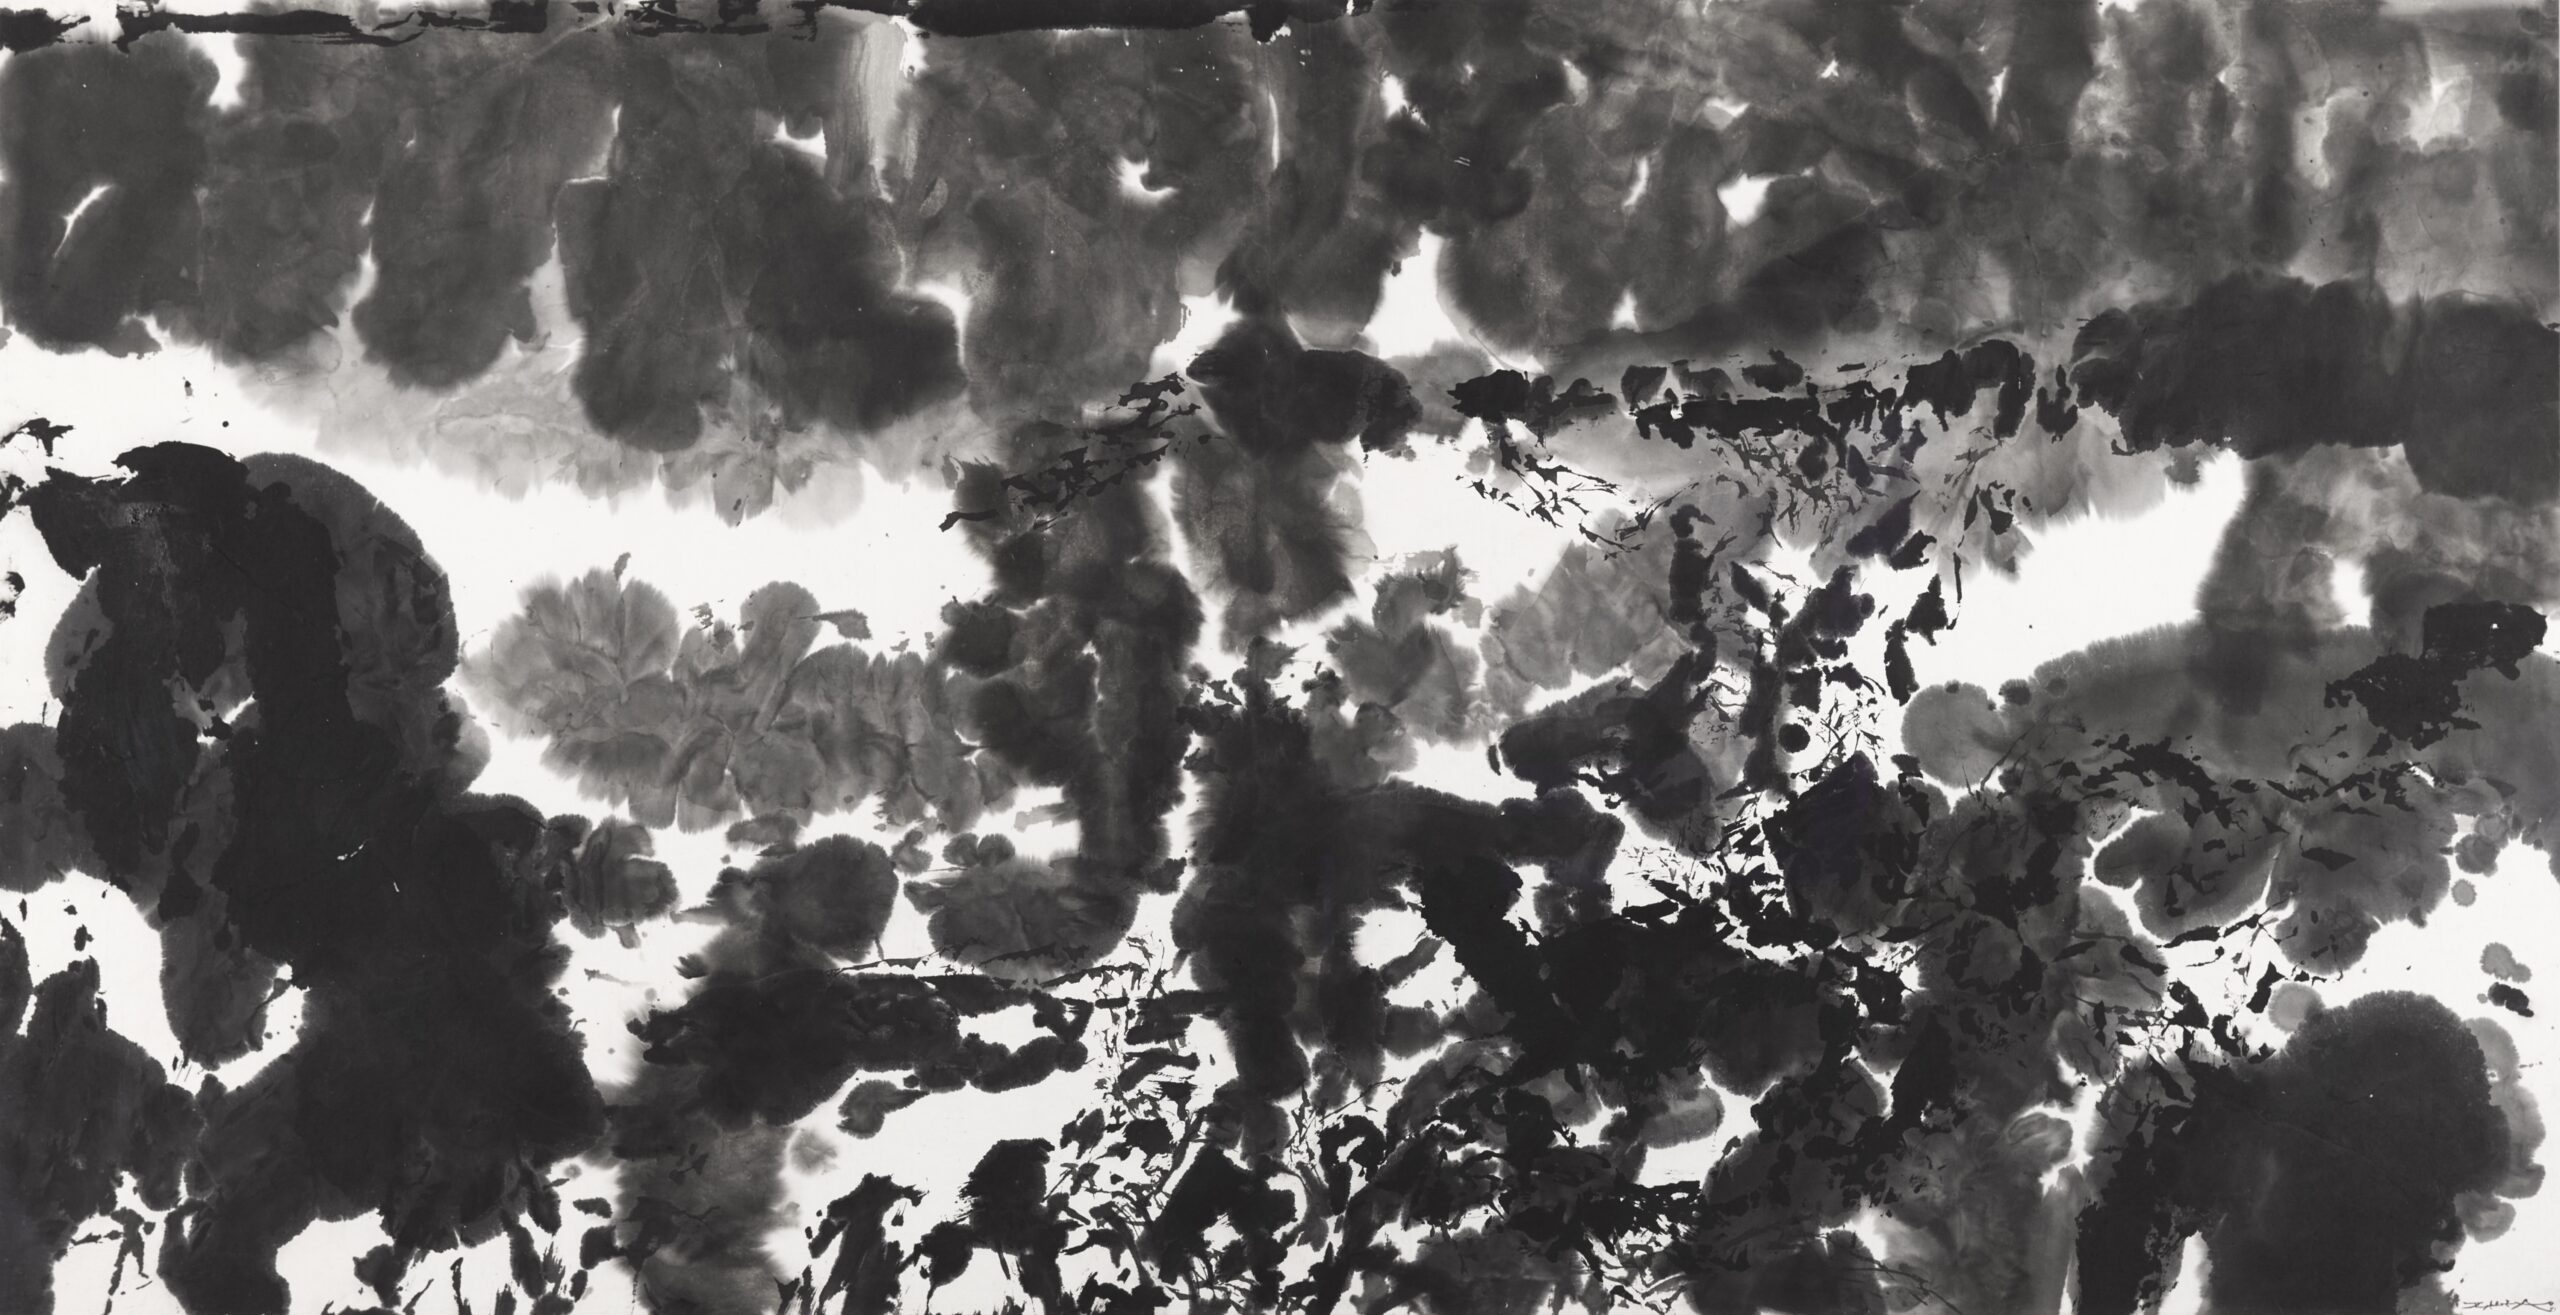 Zao Wou-Ki, Untitled, 1981 Signed and dated lower right Indian ink on paper 67.5 x 131.5 cm